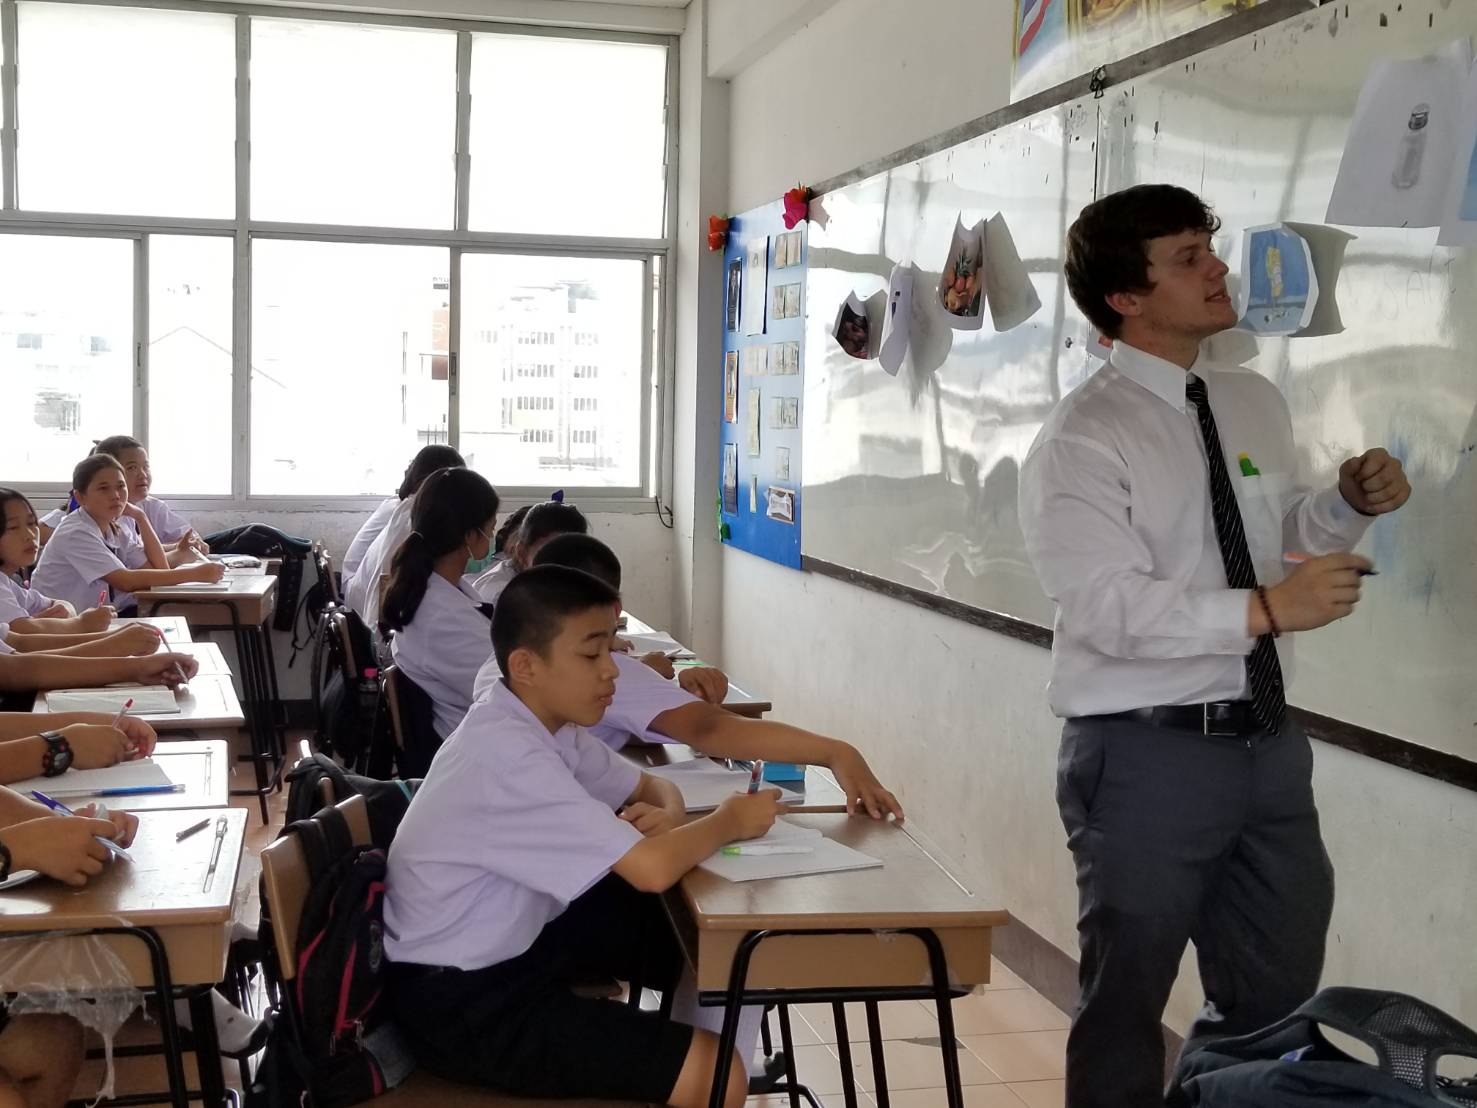 teacher writing on whiteboard in front of classroom